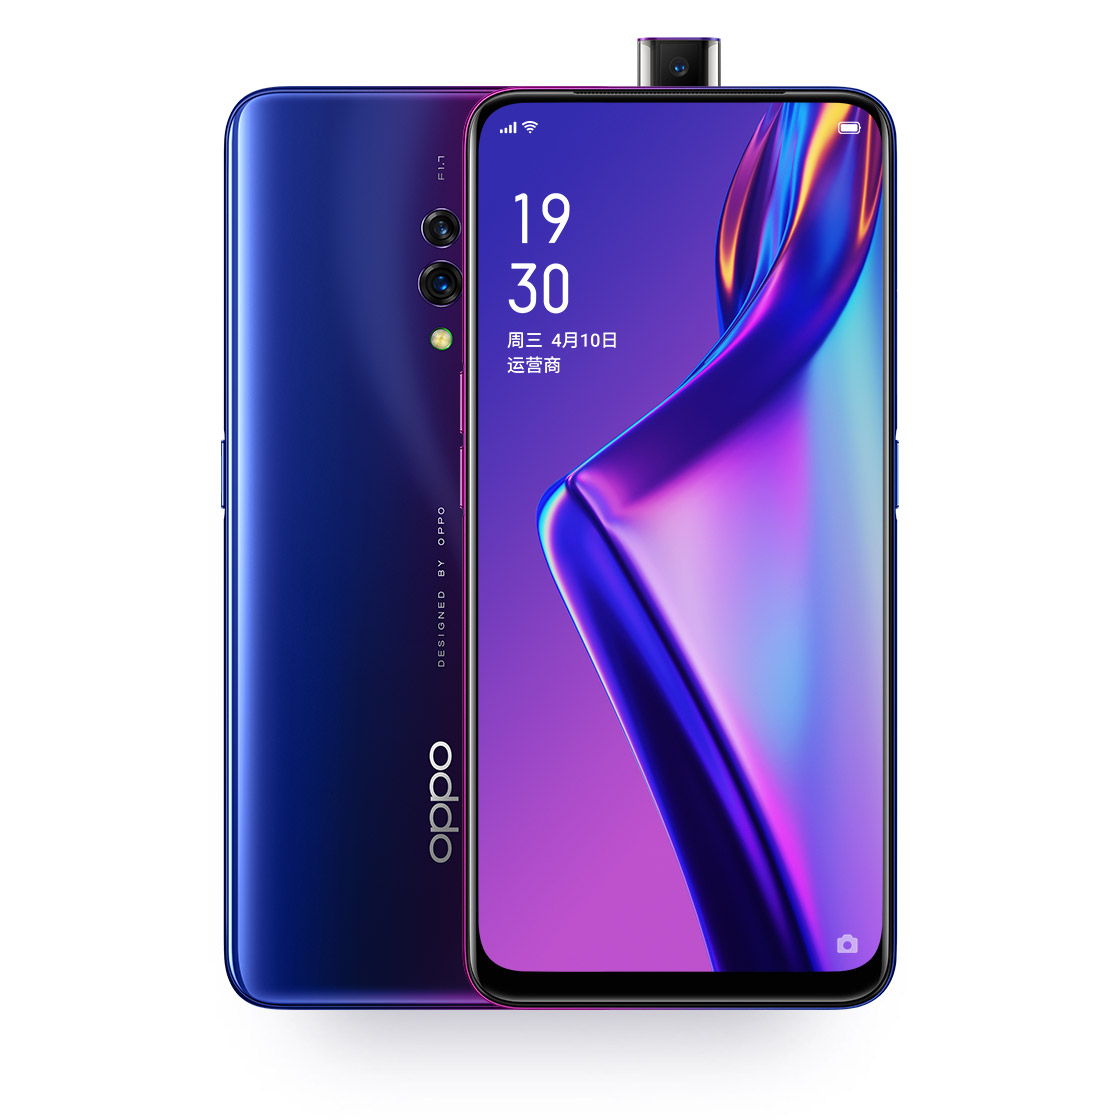 new oppo k3 smartphone 6gb/64gb